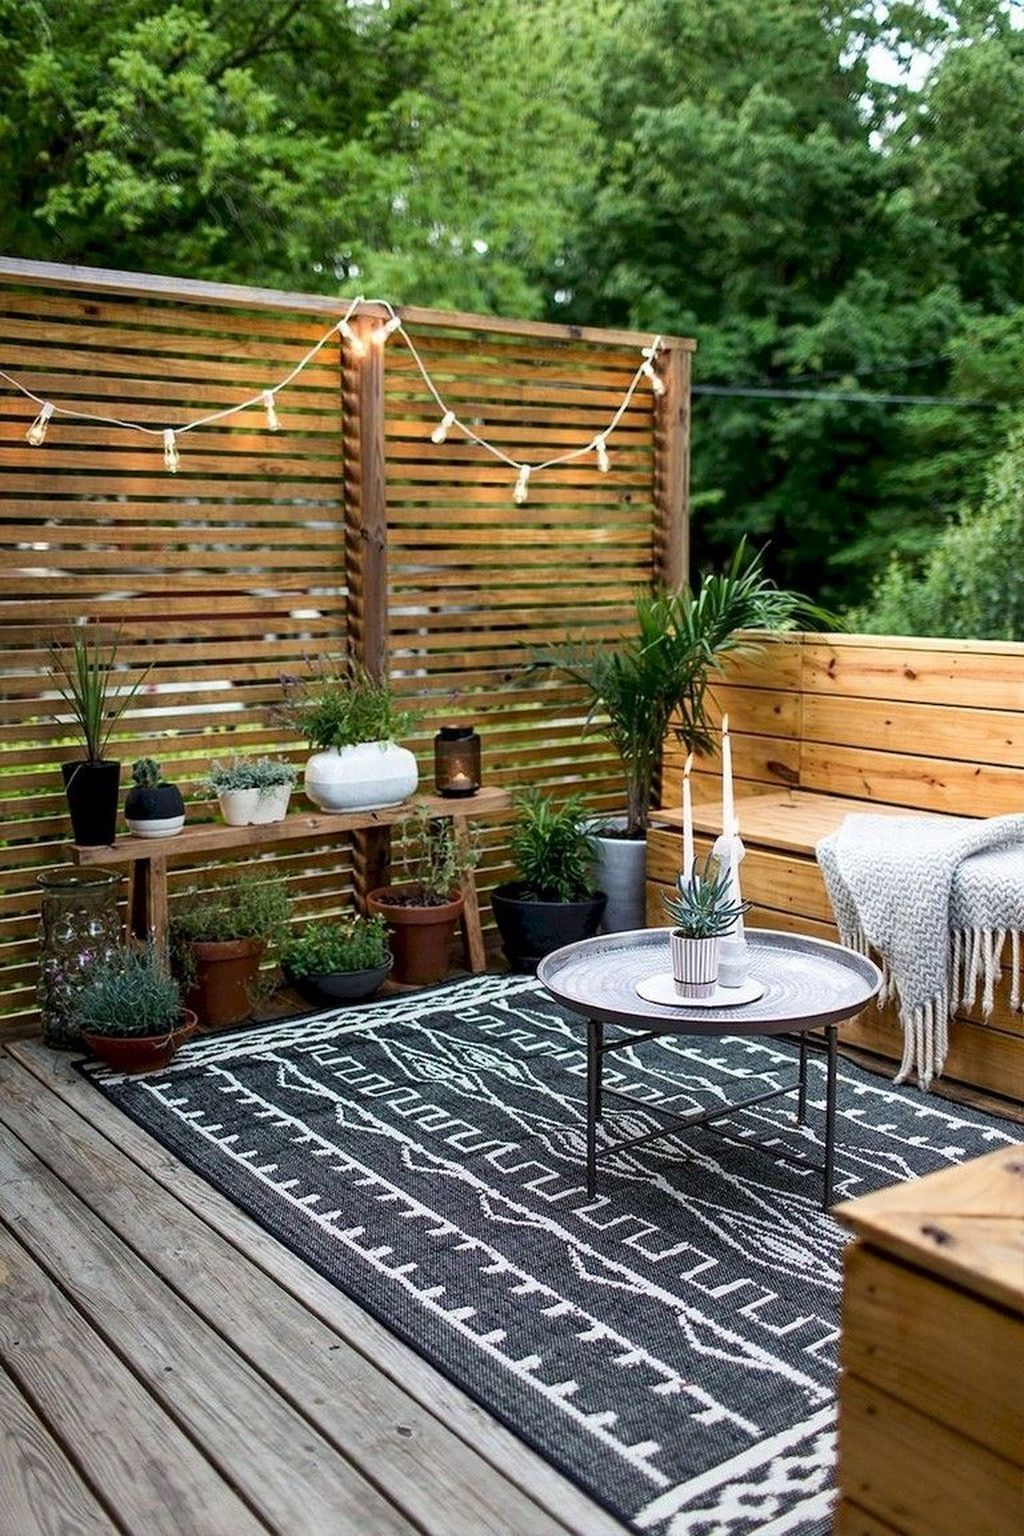 40 gorgeous small backyard landscaping ideas page 27 of on gorgeous small backyard landscaping ideas id=63988